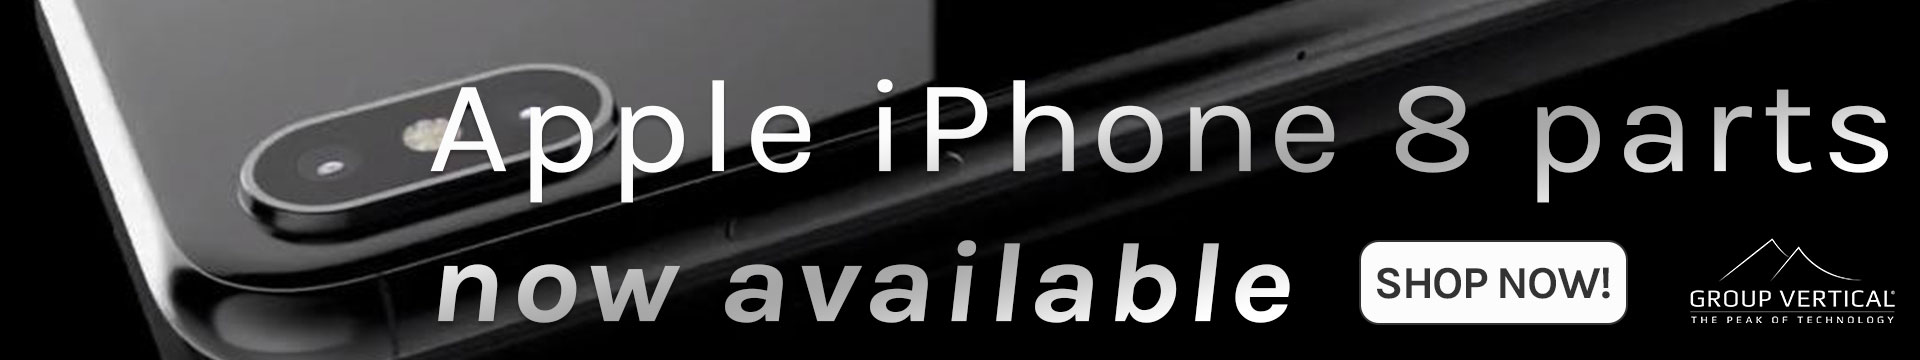 Iphone 8 parts now in stock